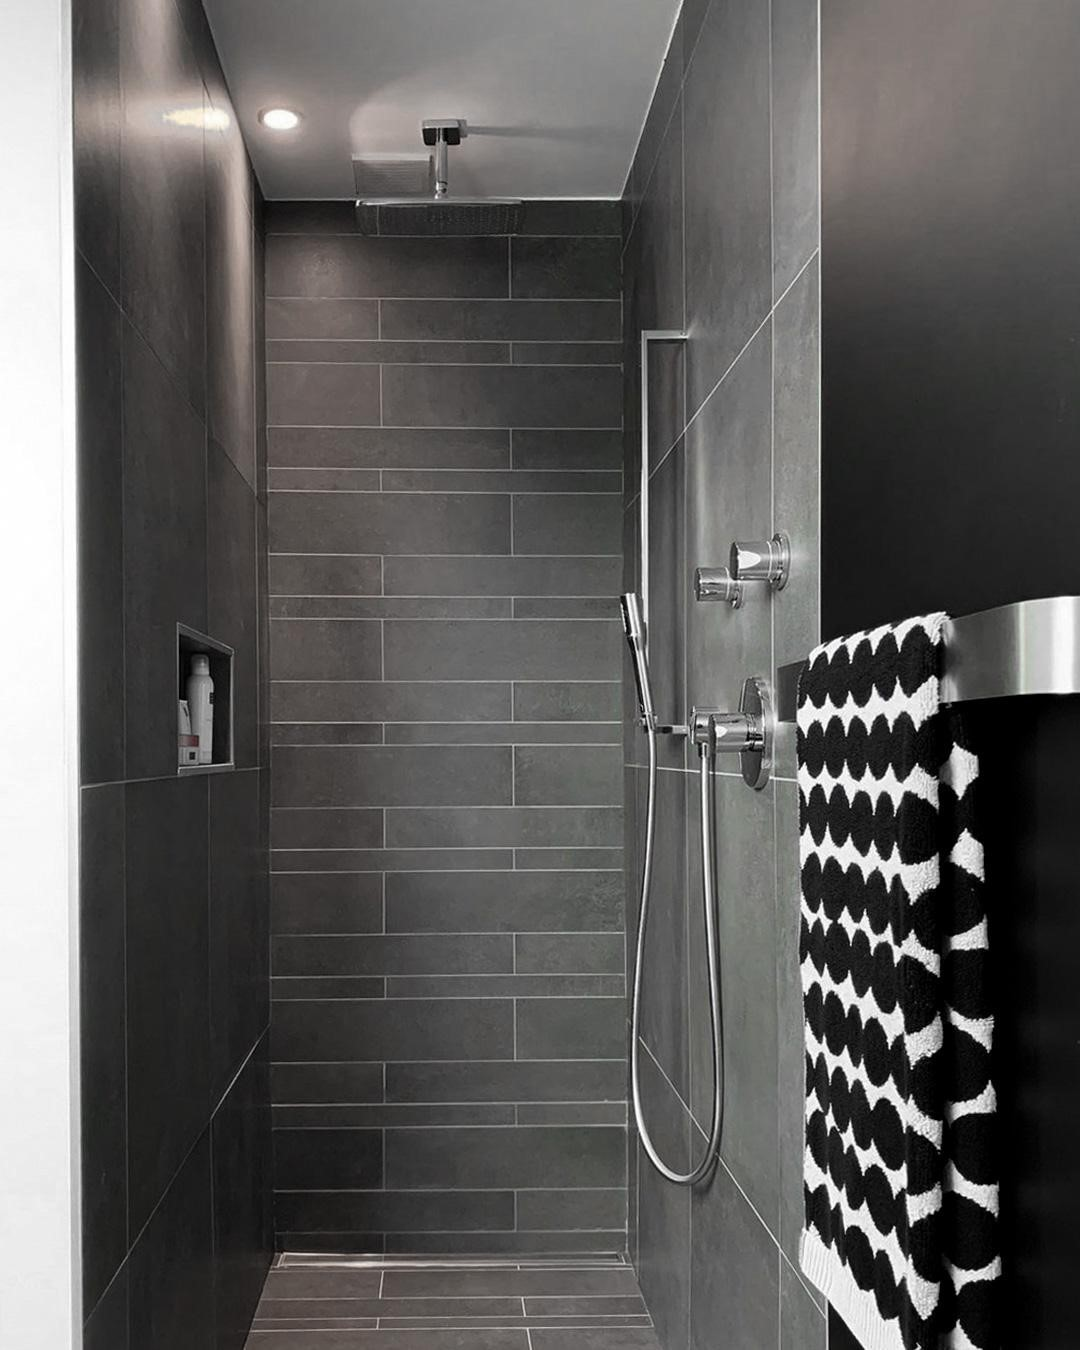 hansgrohe overhead shower for the spa fe...